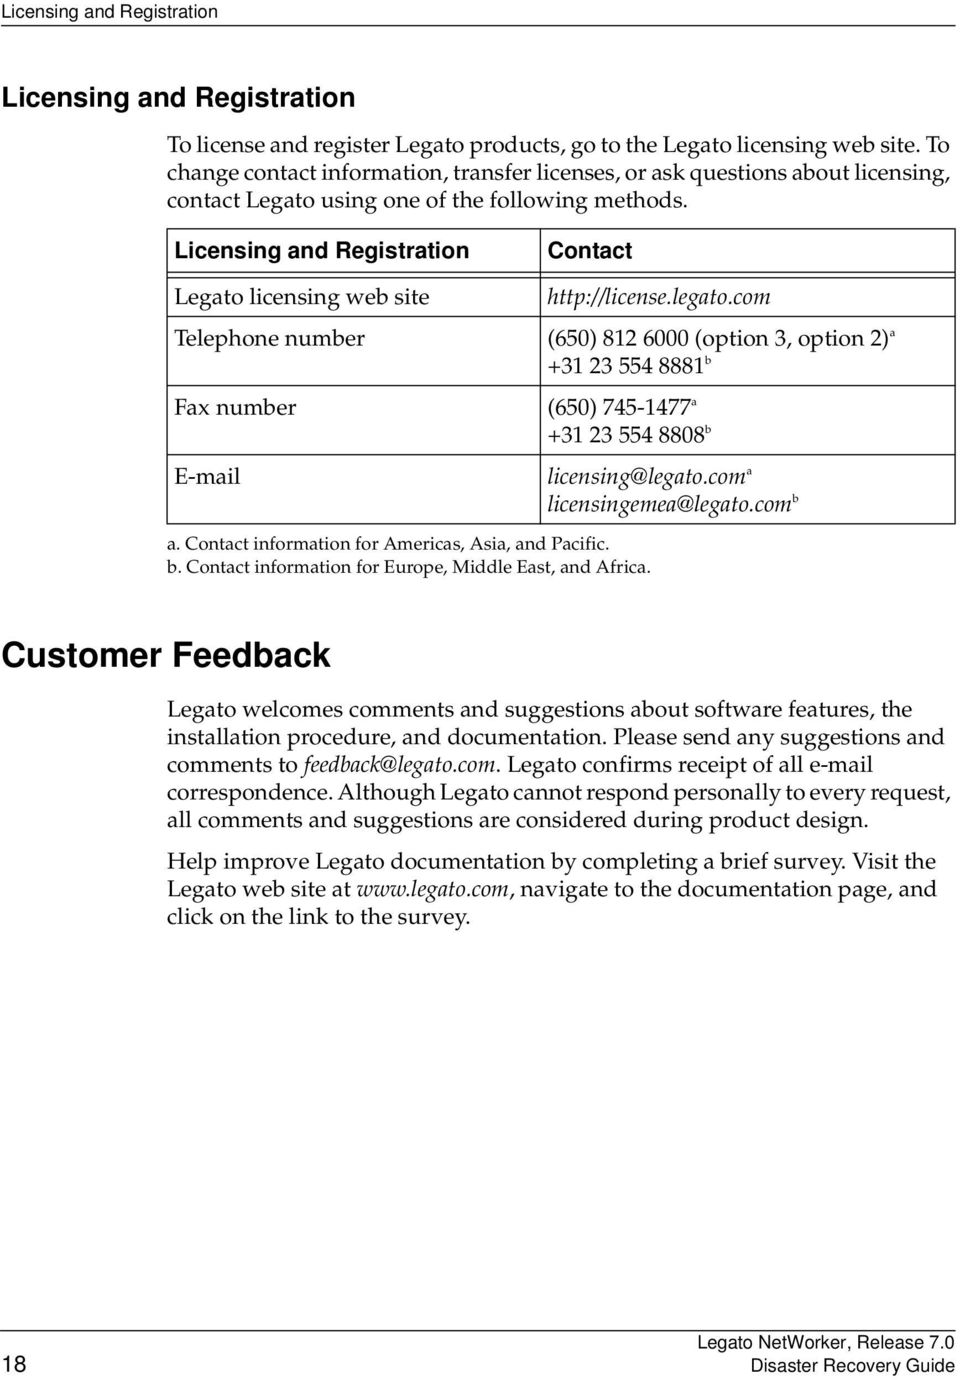 Licensing and Registration Legato licensing web site Telephone number Fax number E-mail Contact http://license.legato.